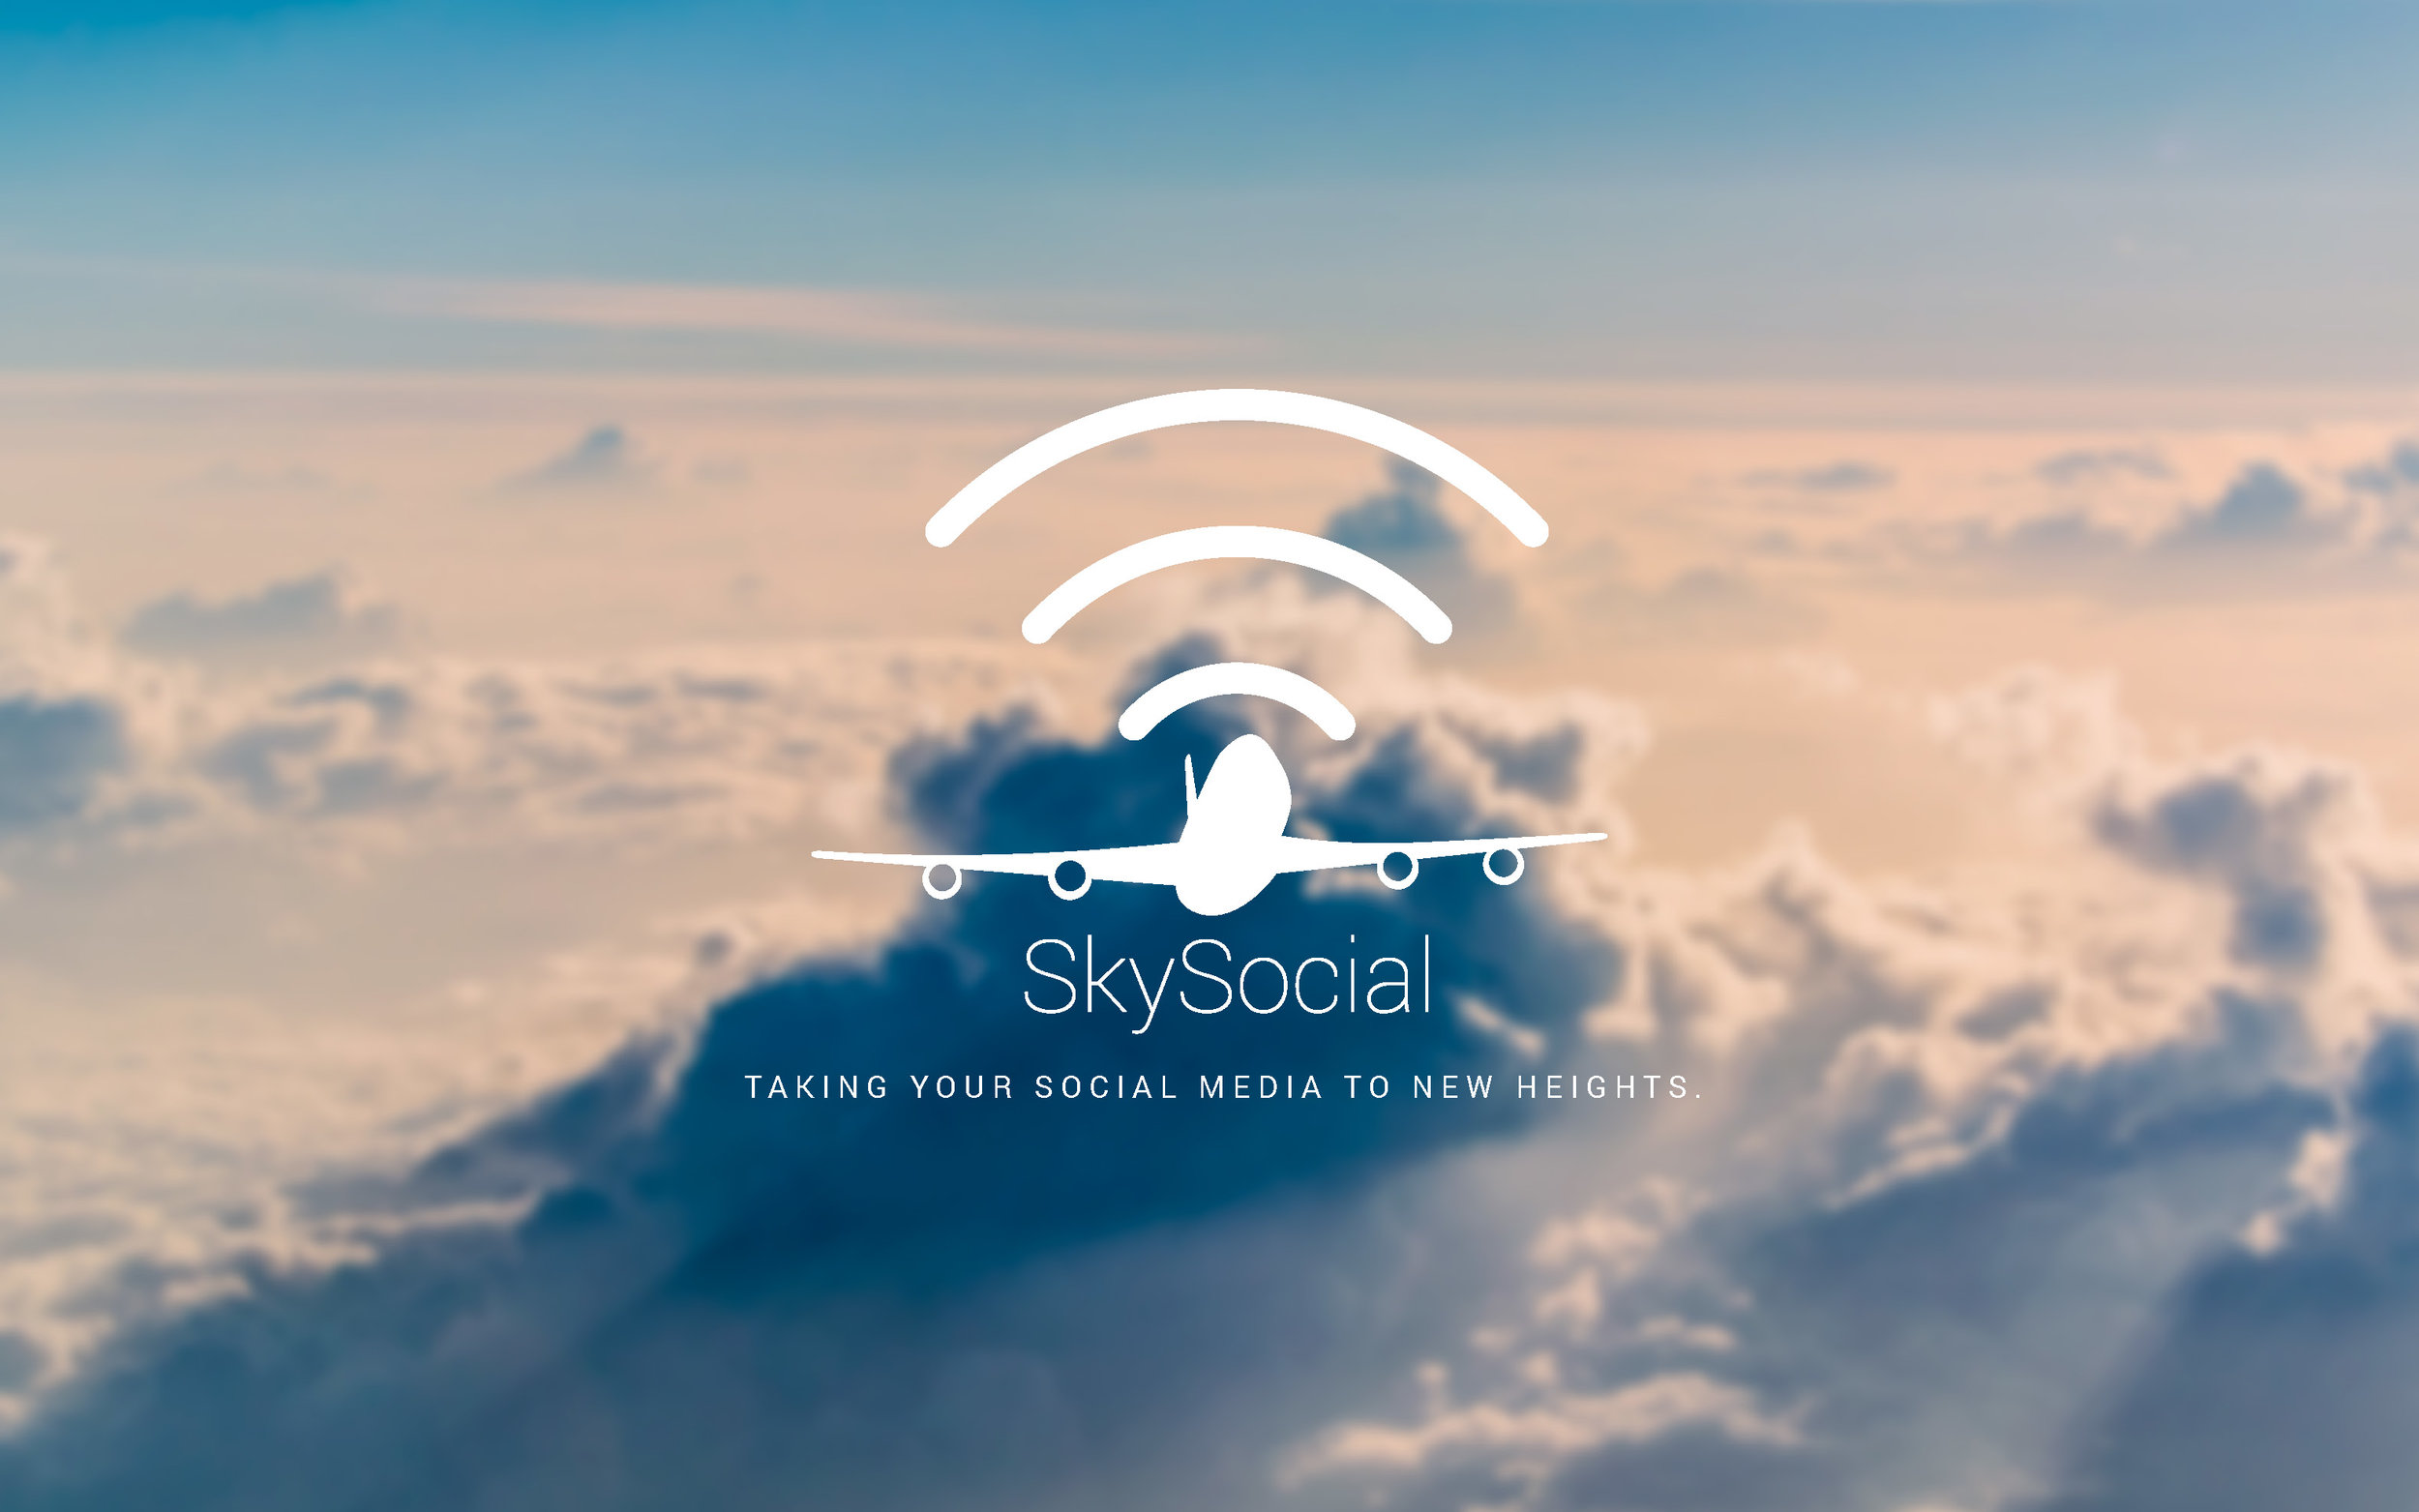 COPY + DESIGN - Wrote and designed client deck for SkySocial, Georgia Southern Student Media's social media services division.